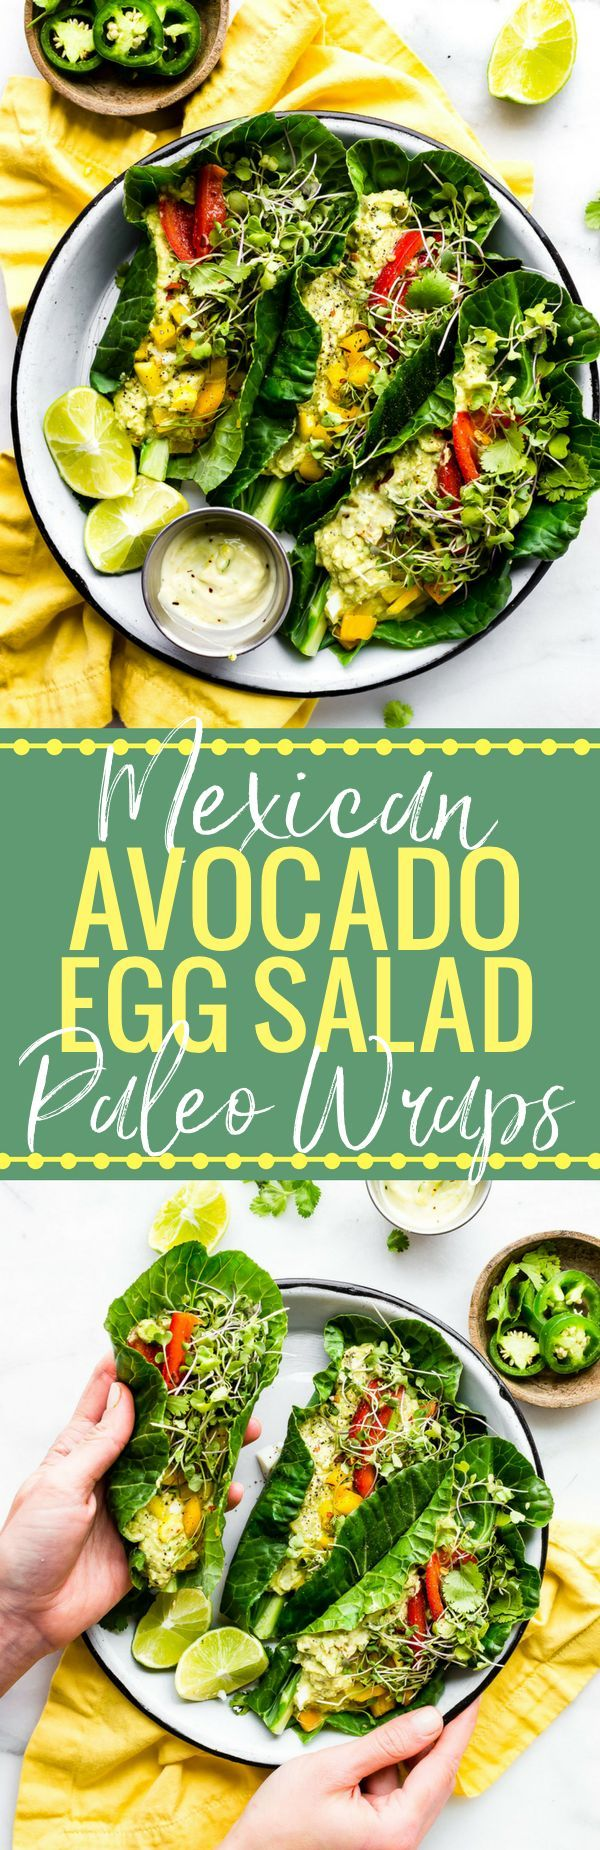 These Mexican avocado egg salad wraps make for a perfect low carb veggie packed lunch! Paleo Avocado Egg Salad seasoned with Mexican spices and jalapeño, then all wrapped up in collard greens! Whole 30 friendly. www.cottercrunch.com